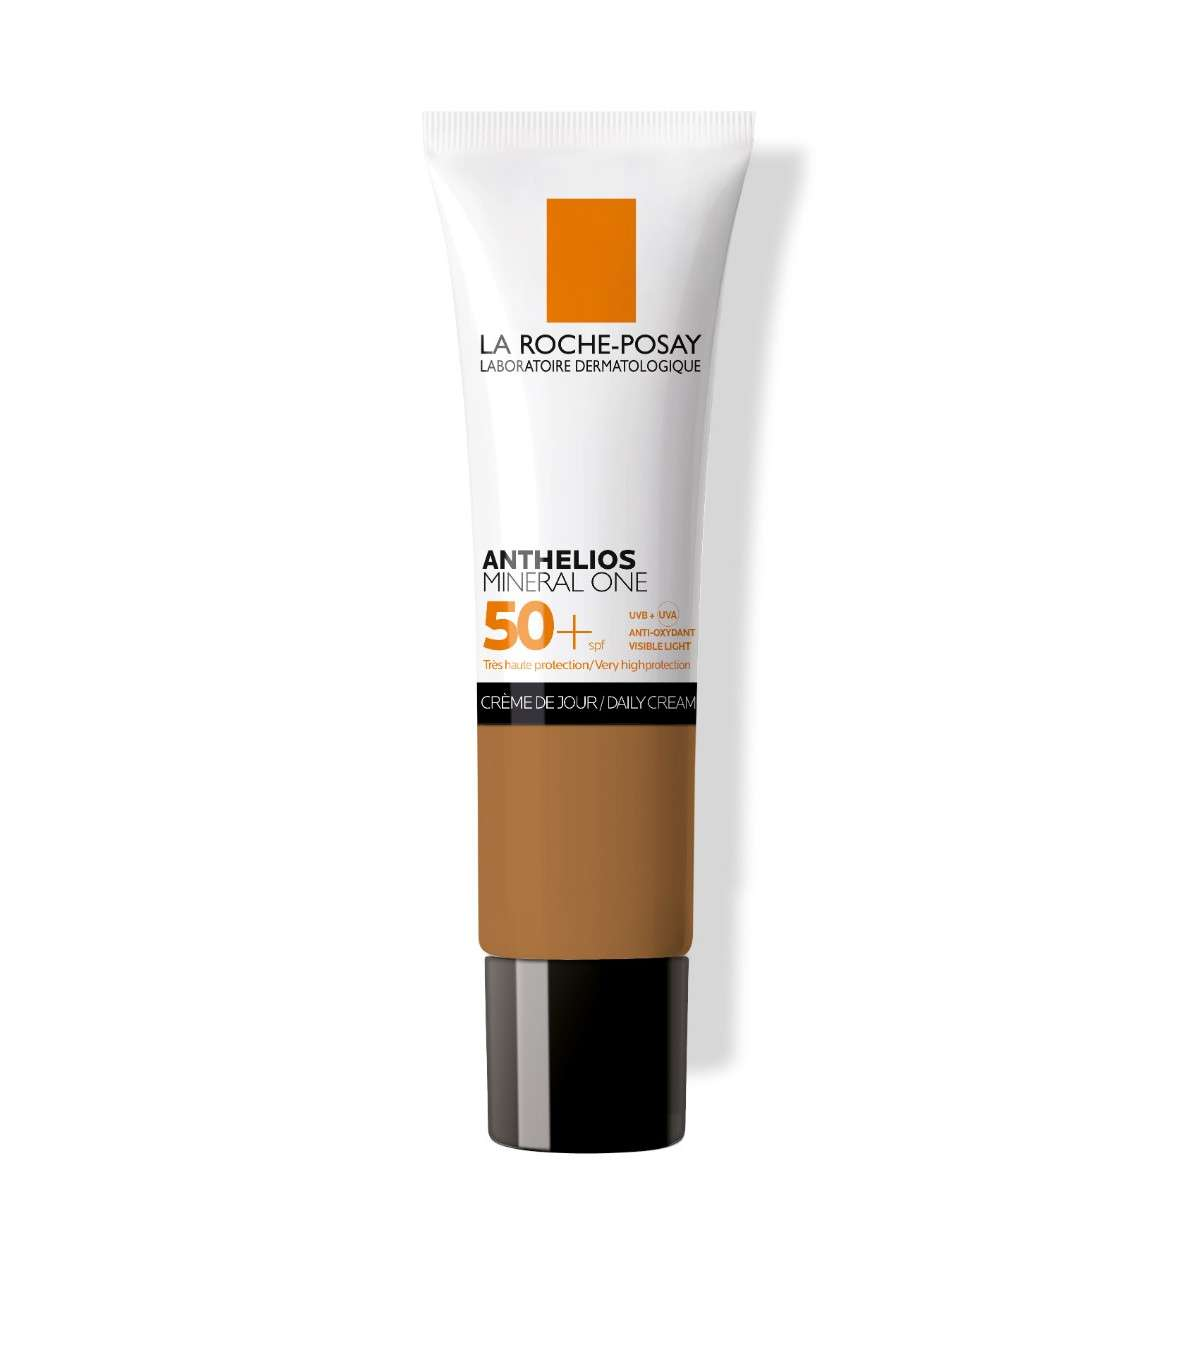 LA ROCHE-POSAY ANTHELIOS MINERAL ONE SPF50+ T05 BRUN FONCE'